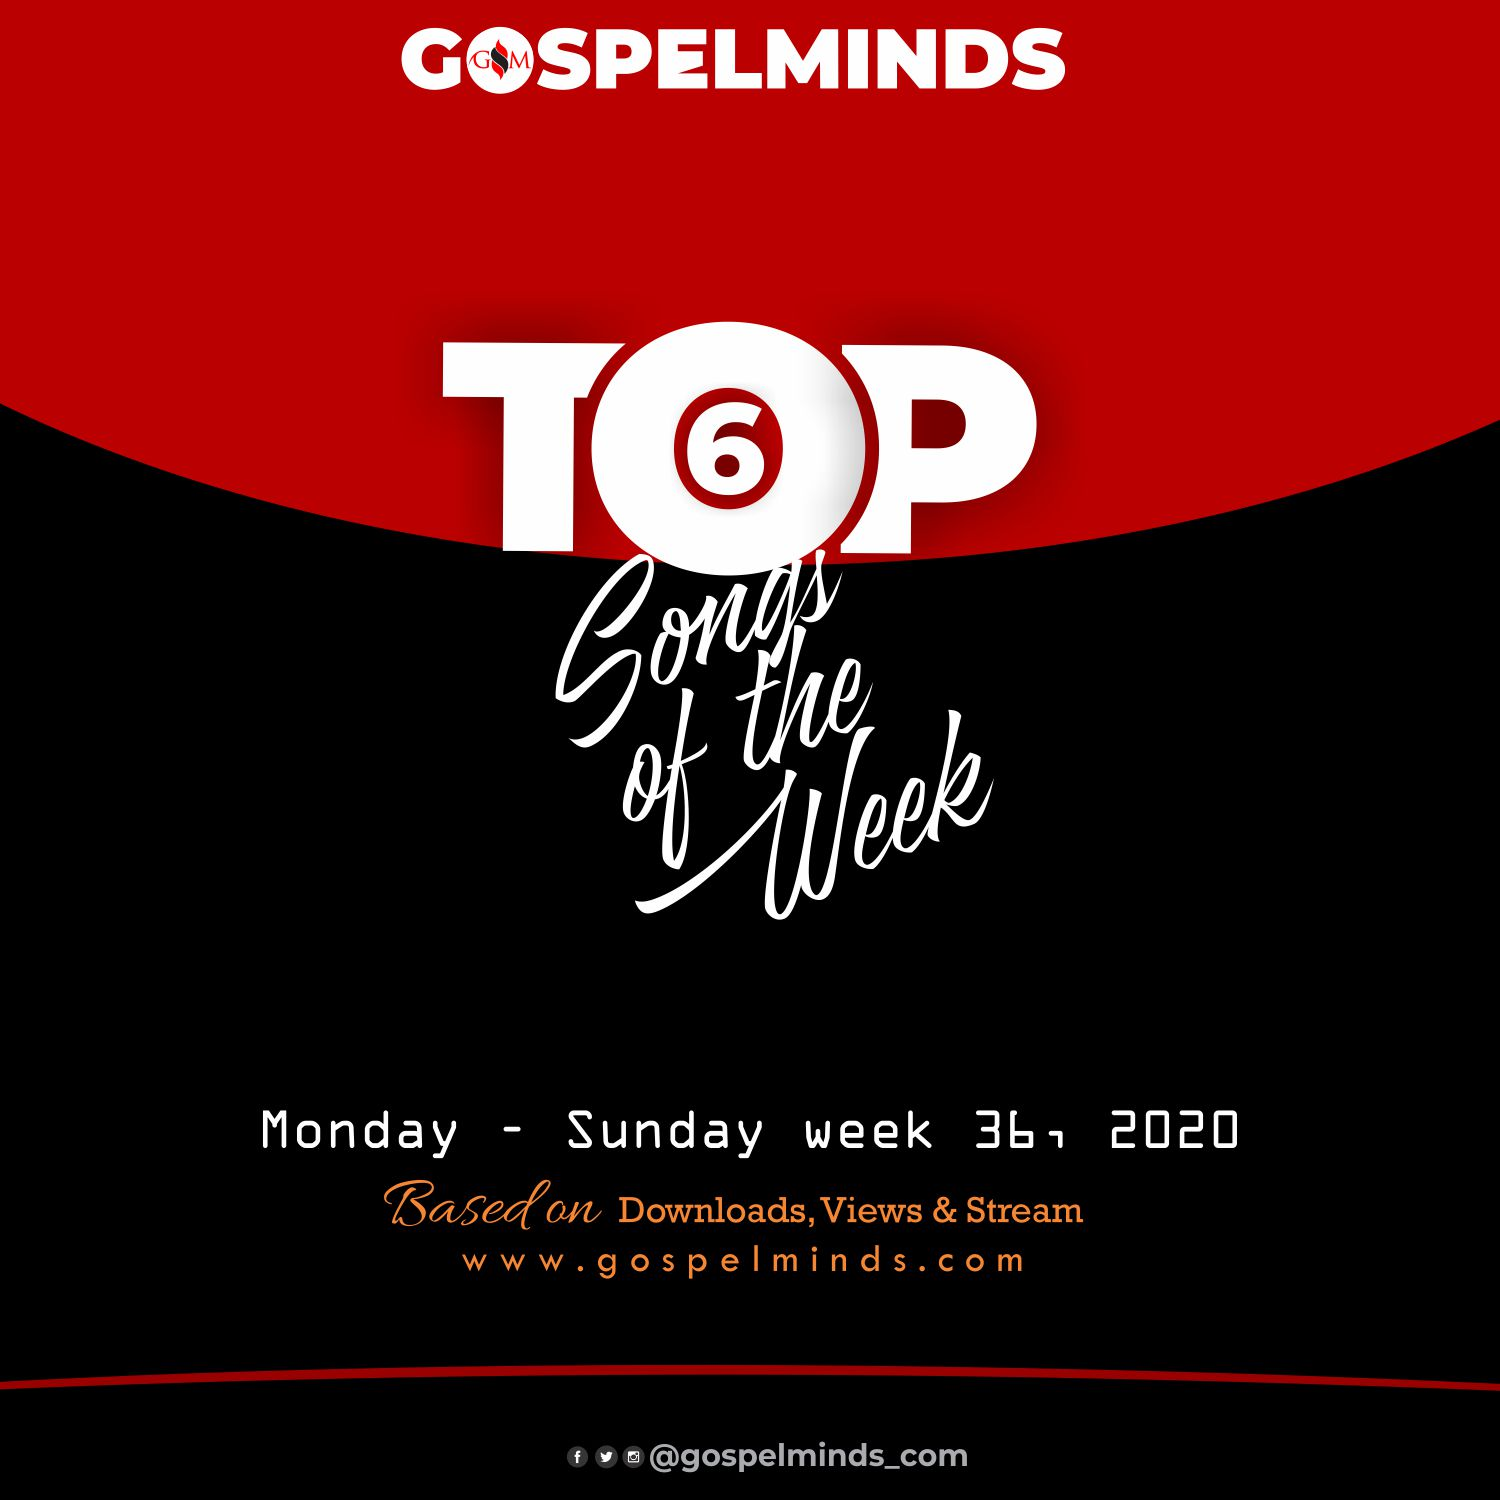 Top 6 Gospel Songs Of The Week - Monday, August 31 – Sunday, September 6, 2020